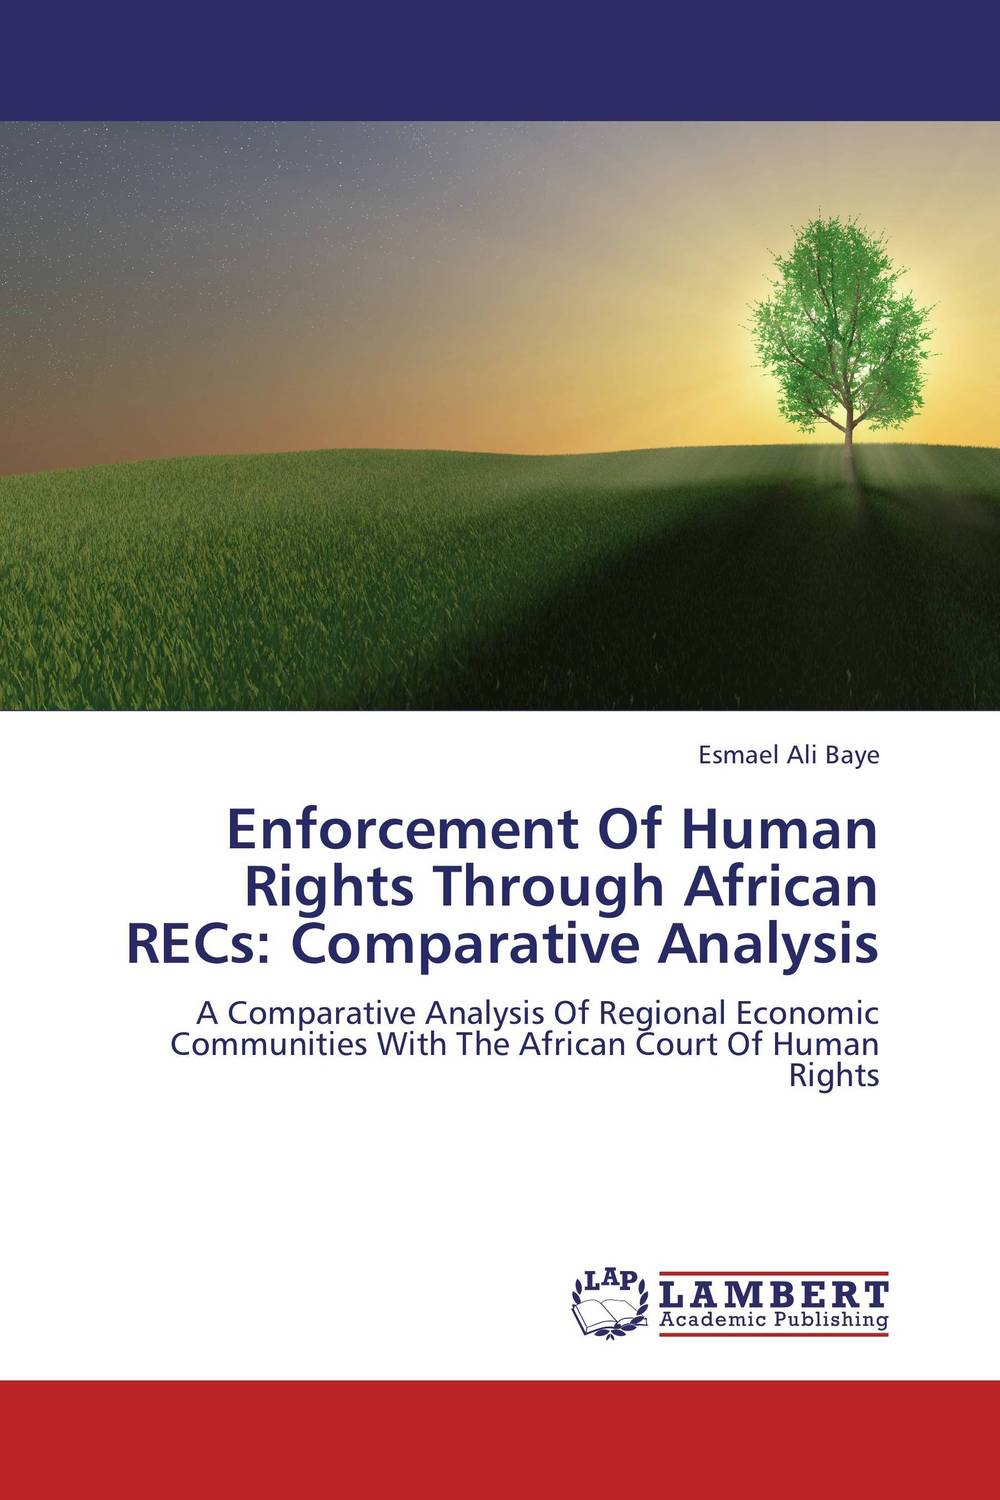 Enforcement Of Human Rights Through African RECs: Comparative Analysis esmael ali baye enforcement of human rights through african recs comparative analysis